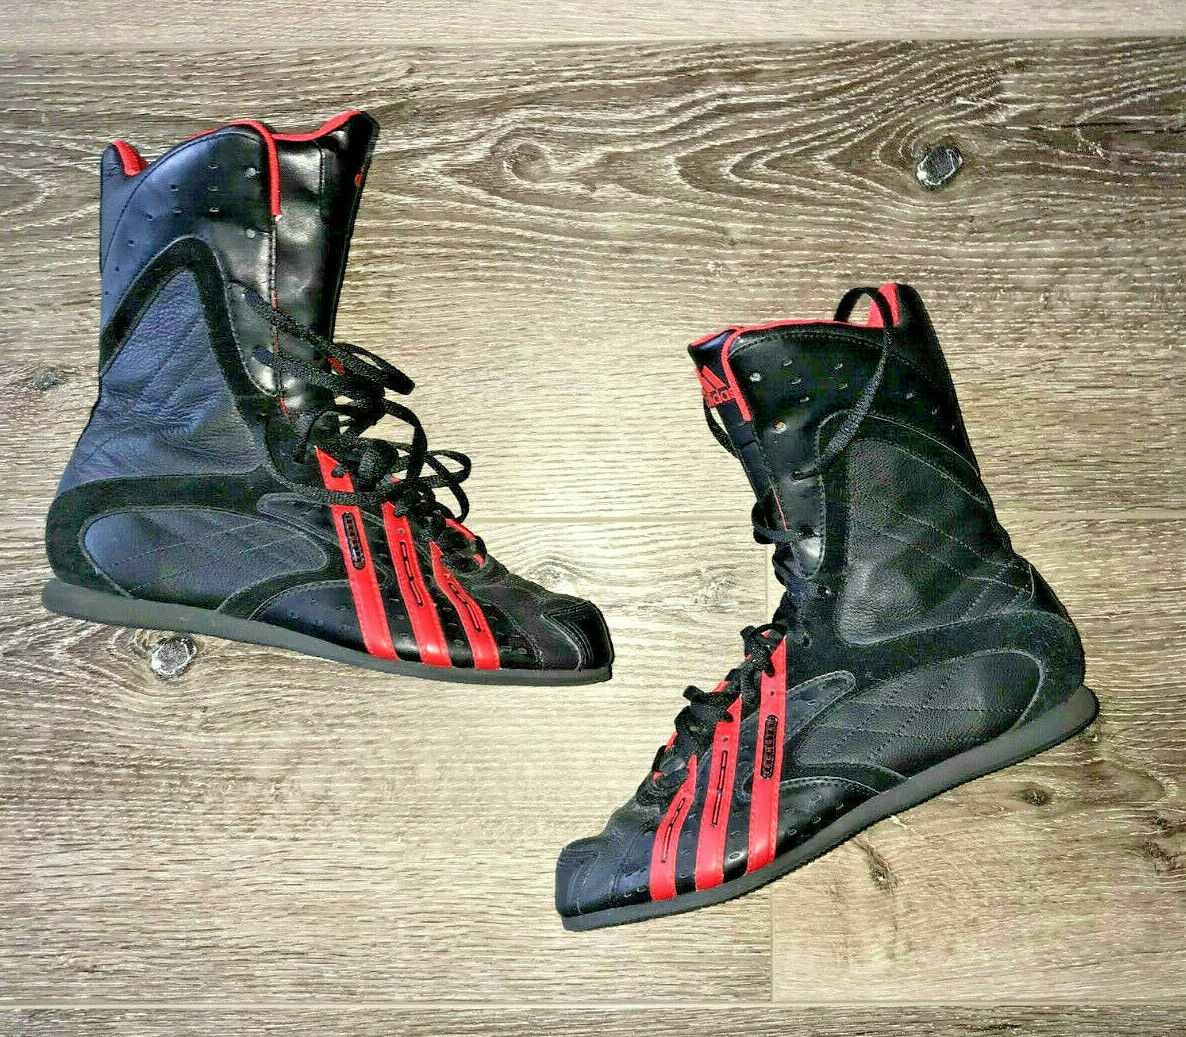 RARE adidas BLACK RED LEATHER  TECH STAR  BOXING BOOTS SHOES WOMENS 7 EDITORIAL